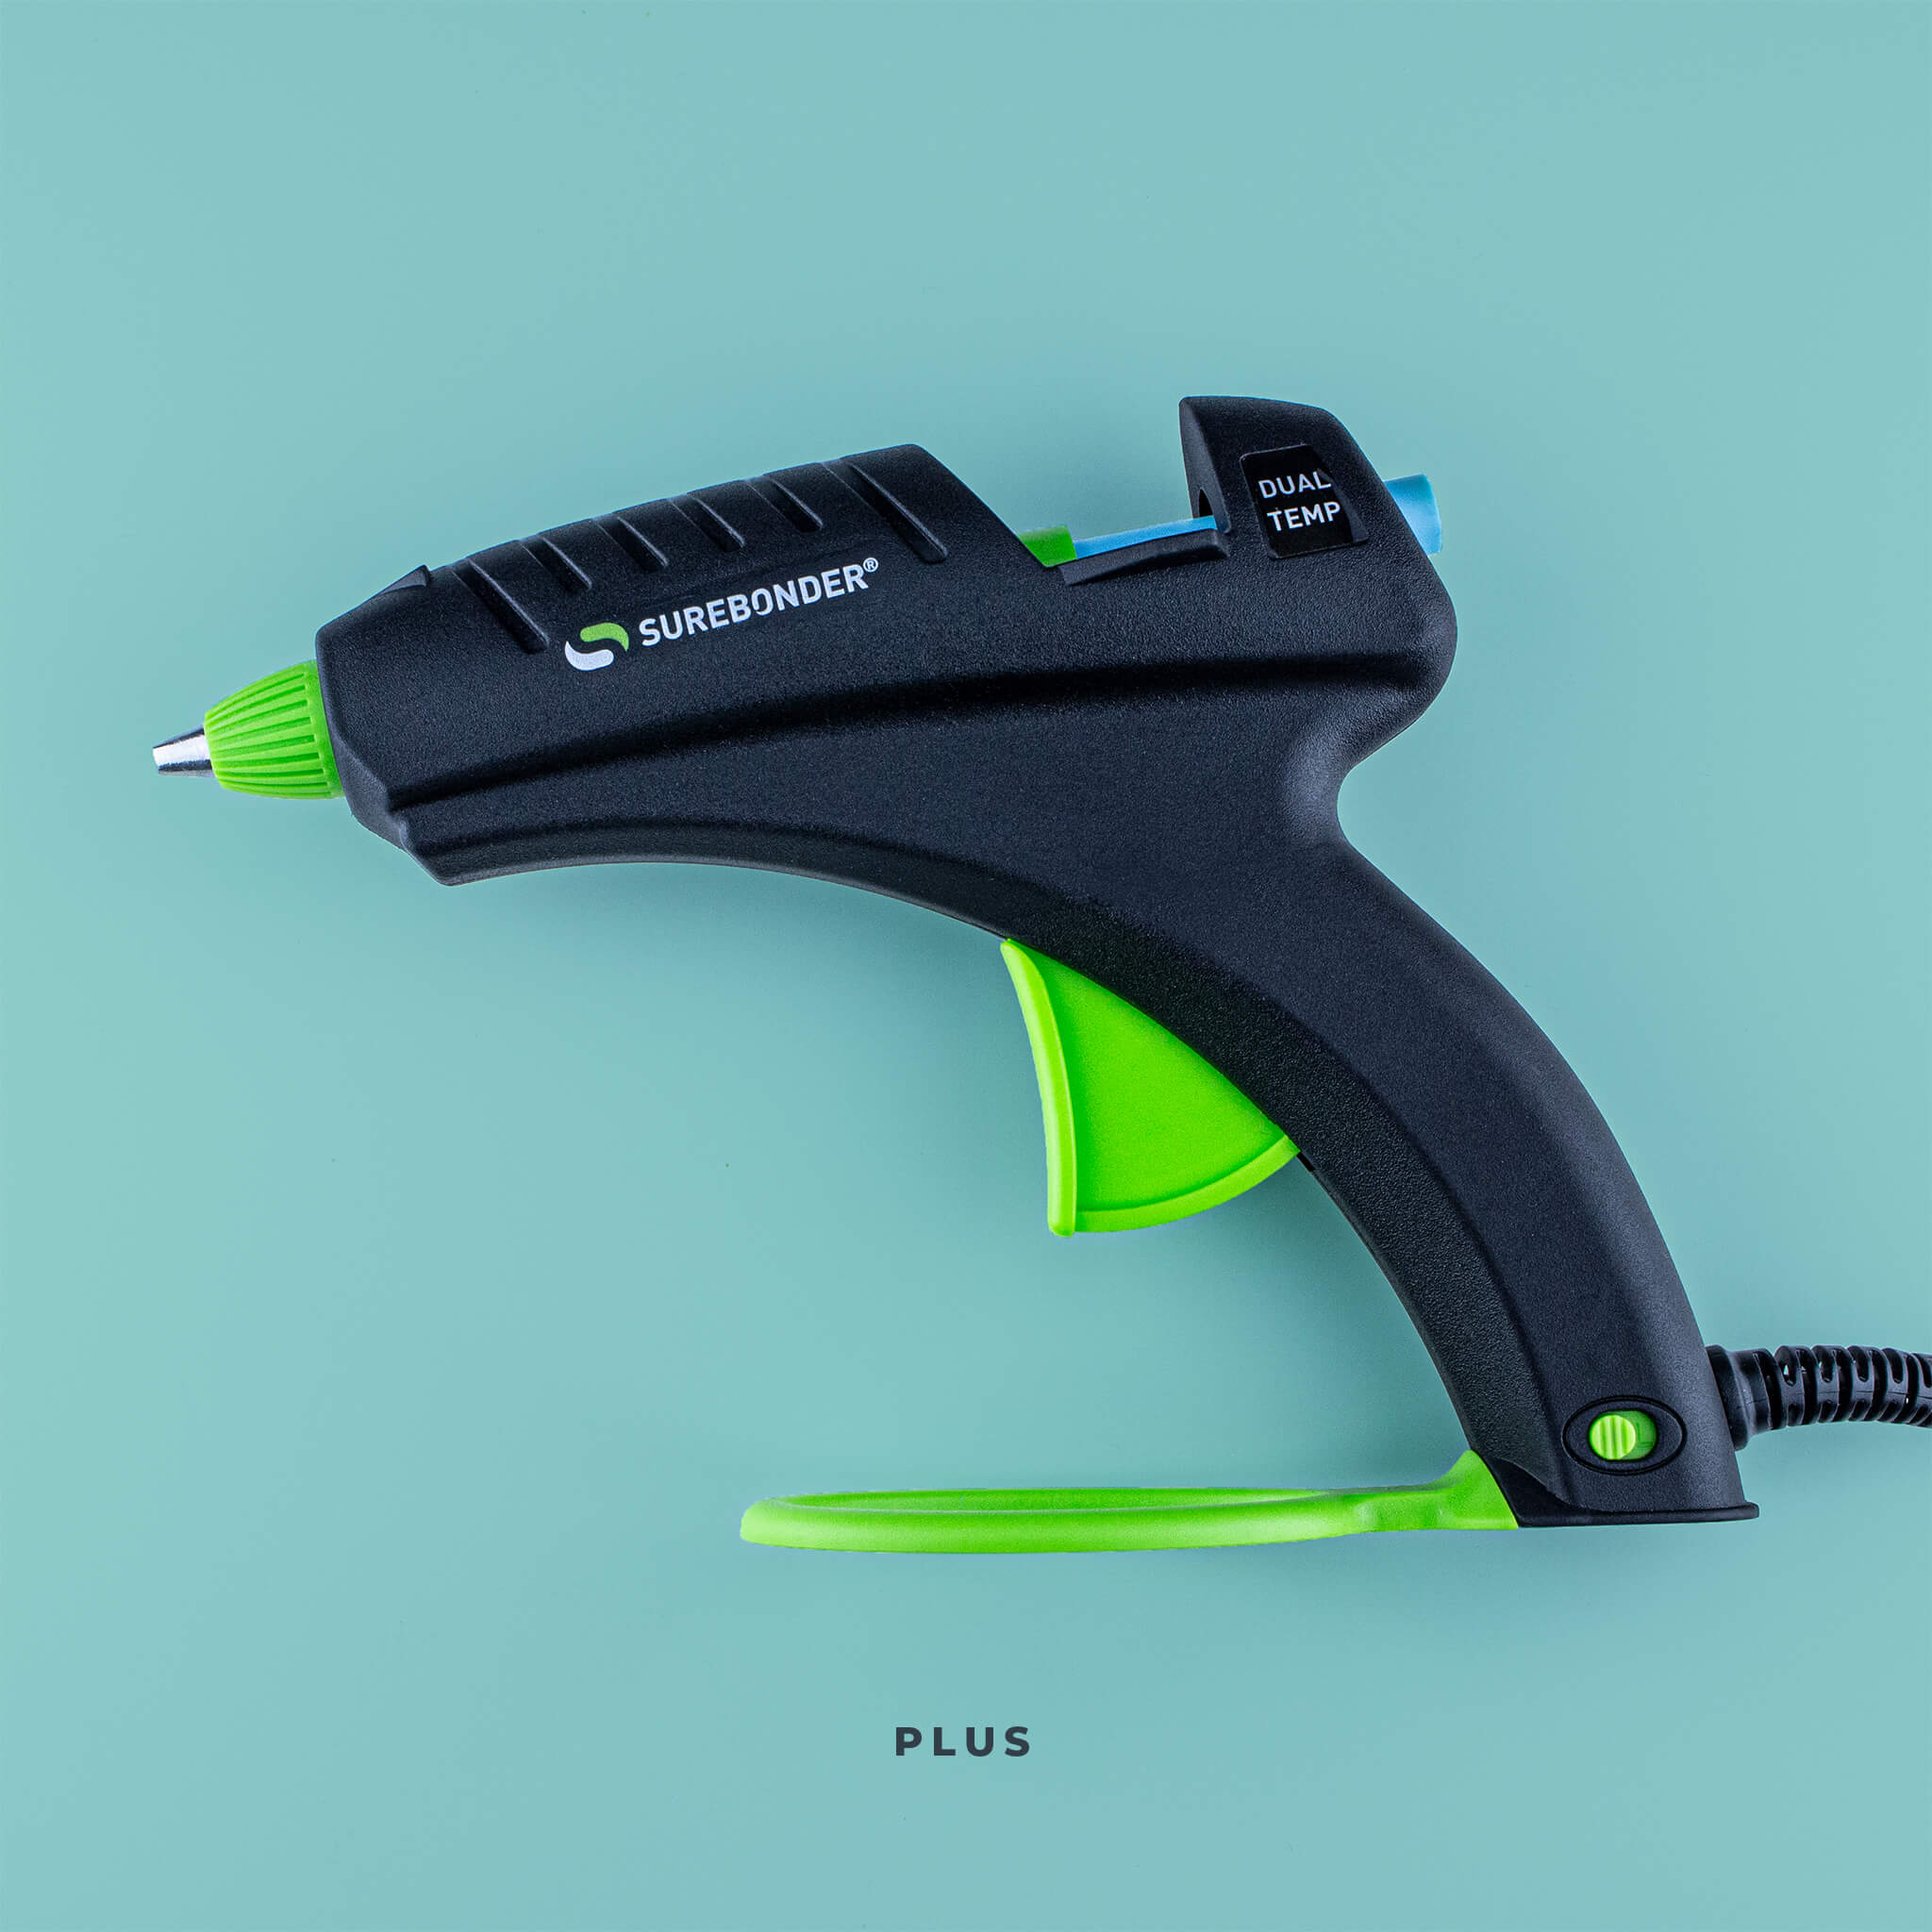 Surebonder PLUS Glue Gun for Sealing Wax